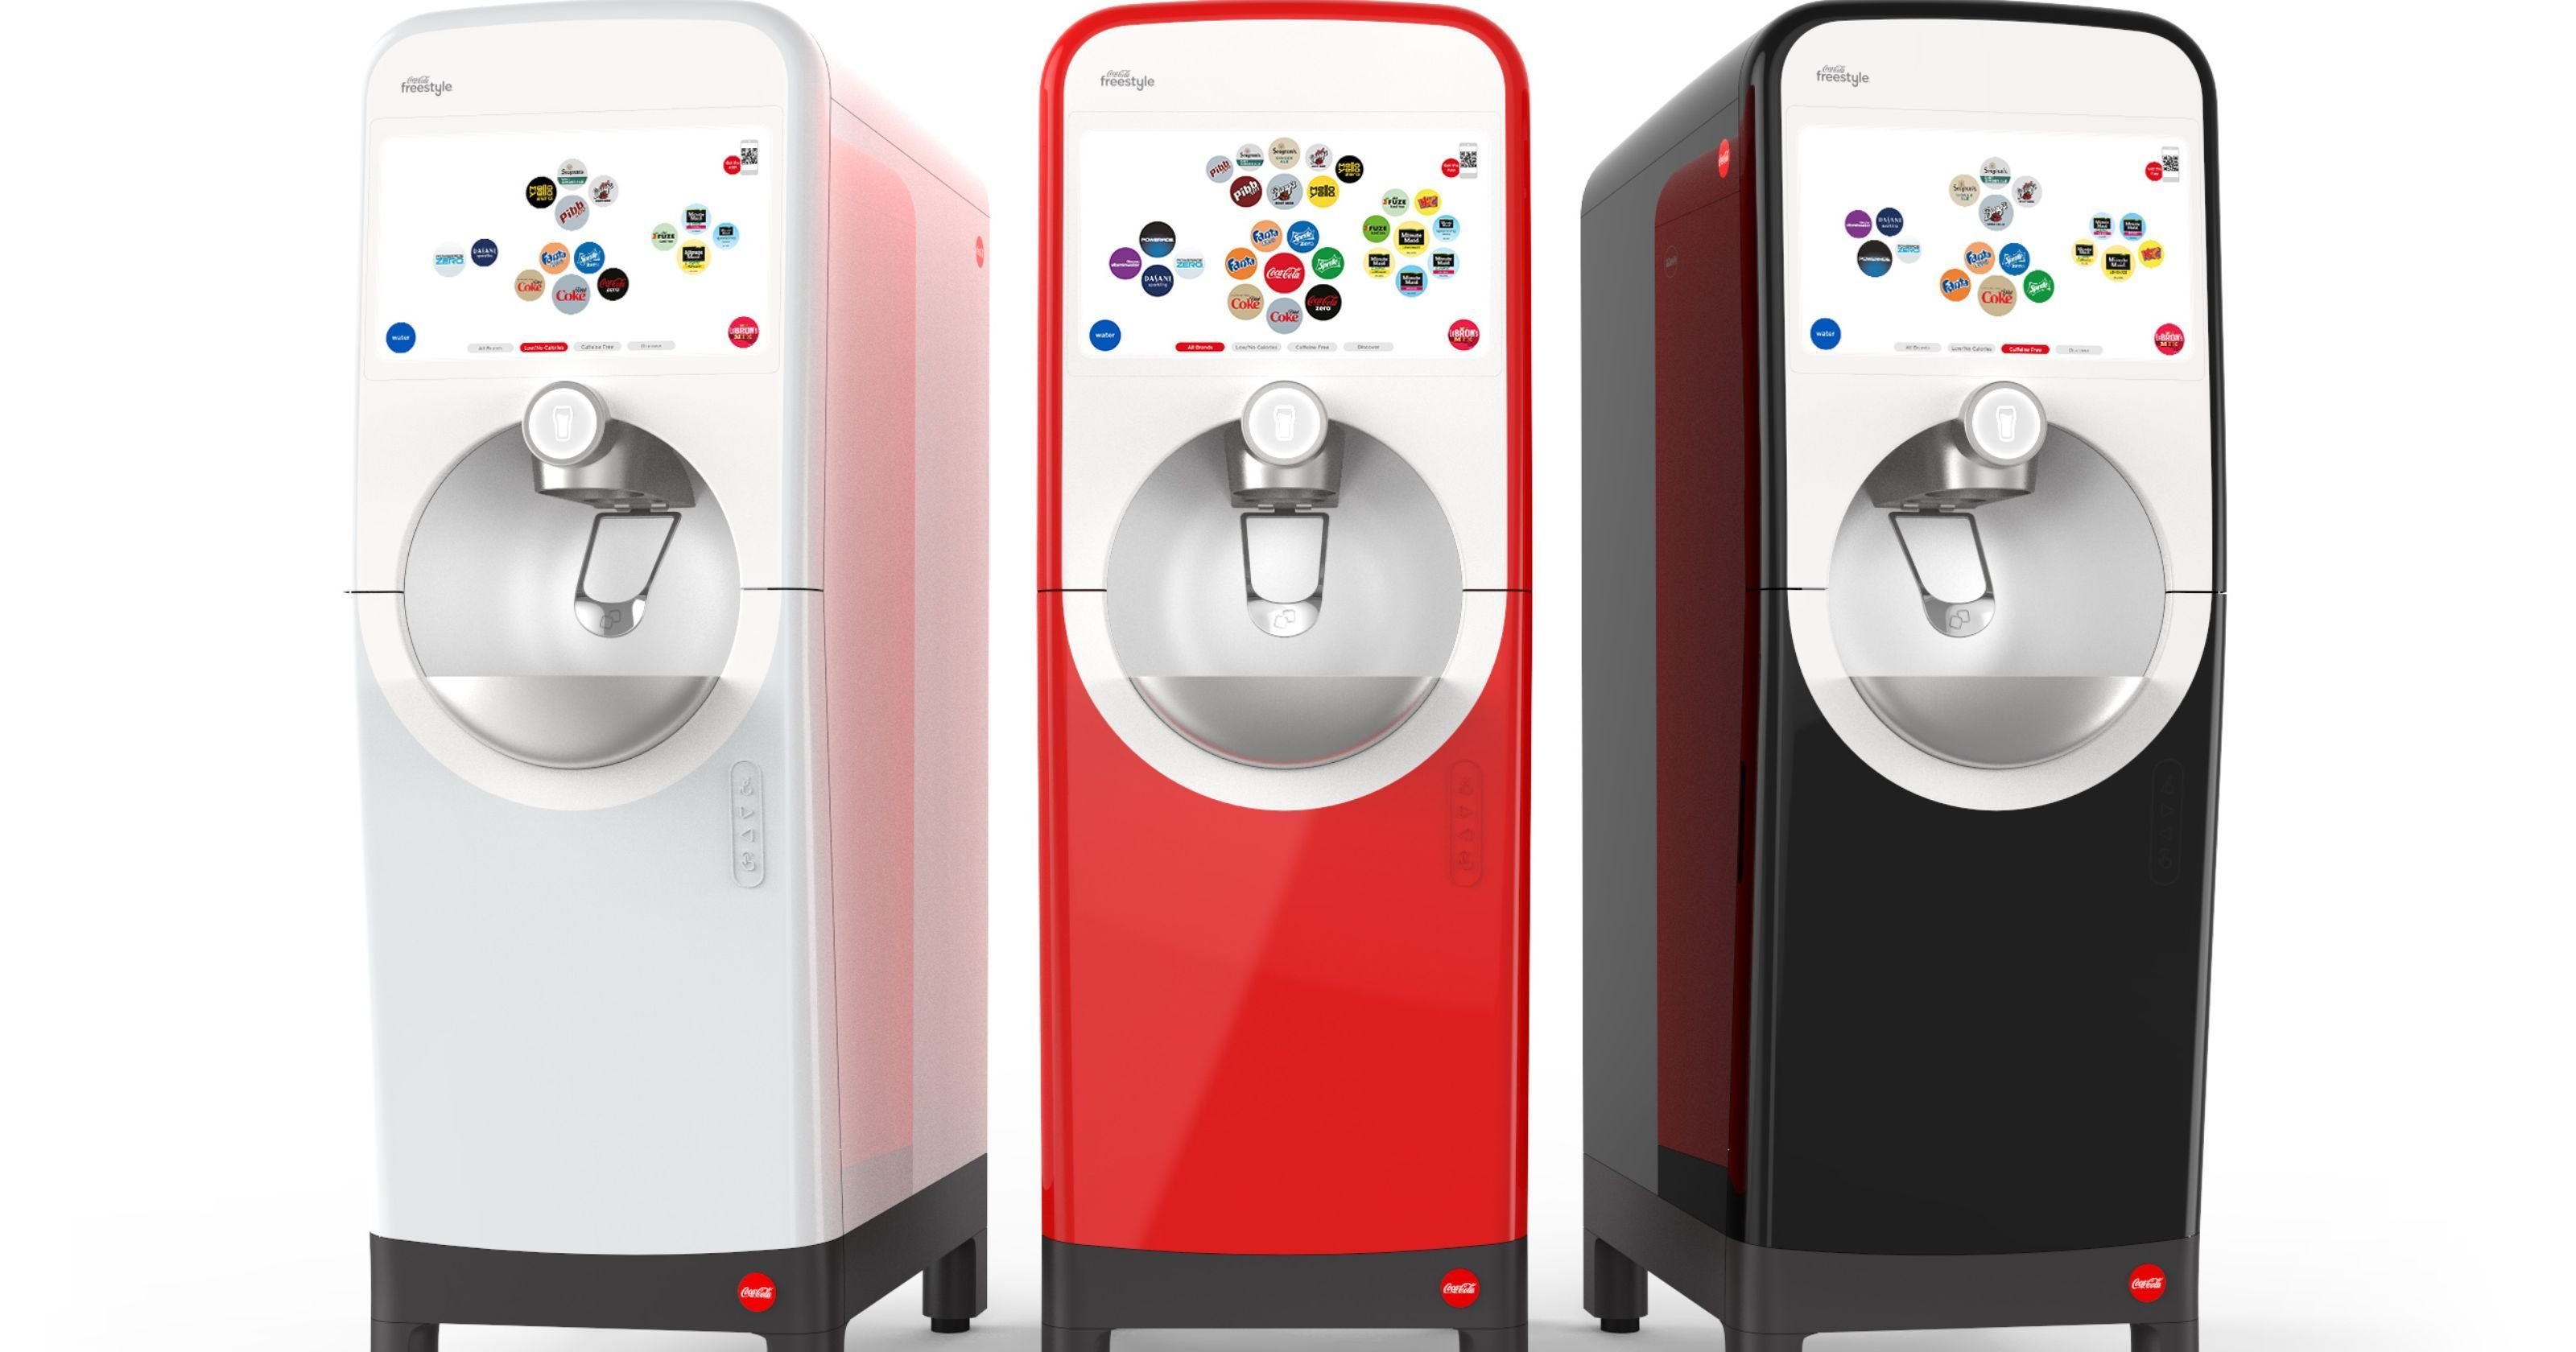 Coca-Cola, Bluetooth let you make personalized drinks #bluetoothtechnology Coca-Cola is unveiling a new fountain drink machine this weekend that lets you use Bluetooth technology to play mixologist for your fountain drinks. It rolls out in 2019. #bluetoothtechnology